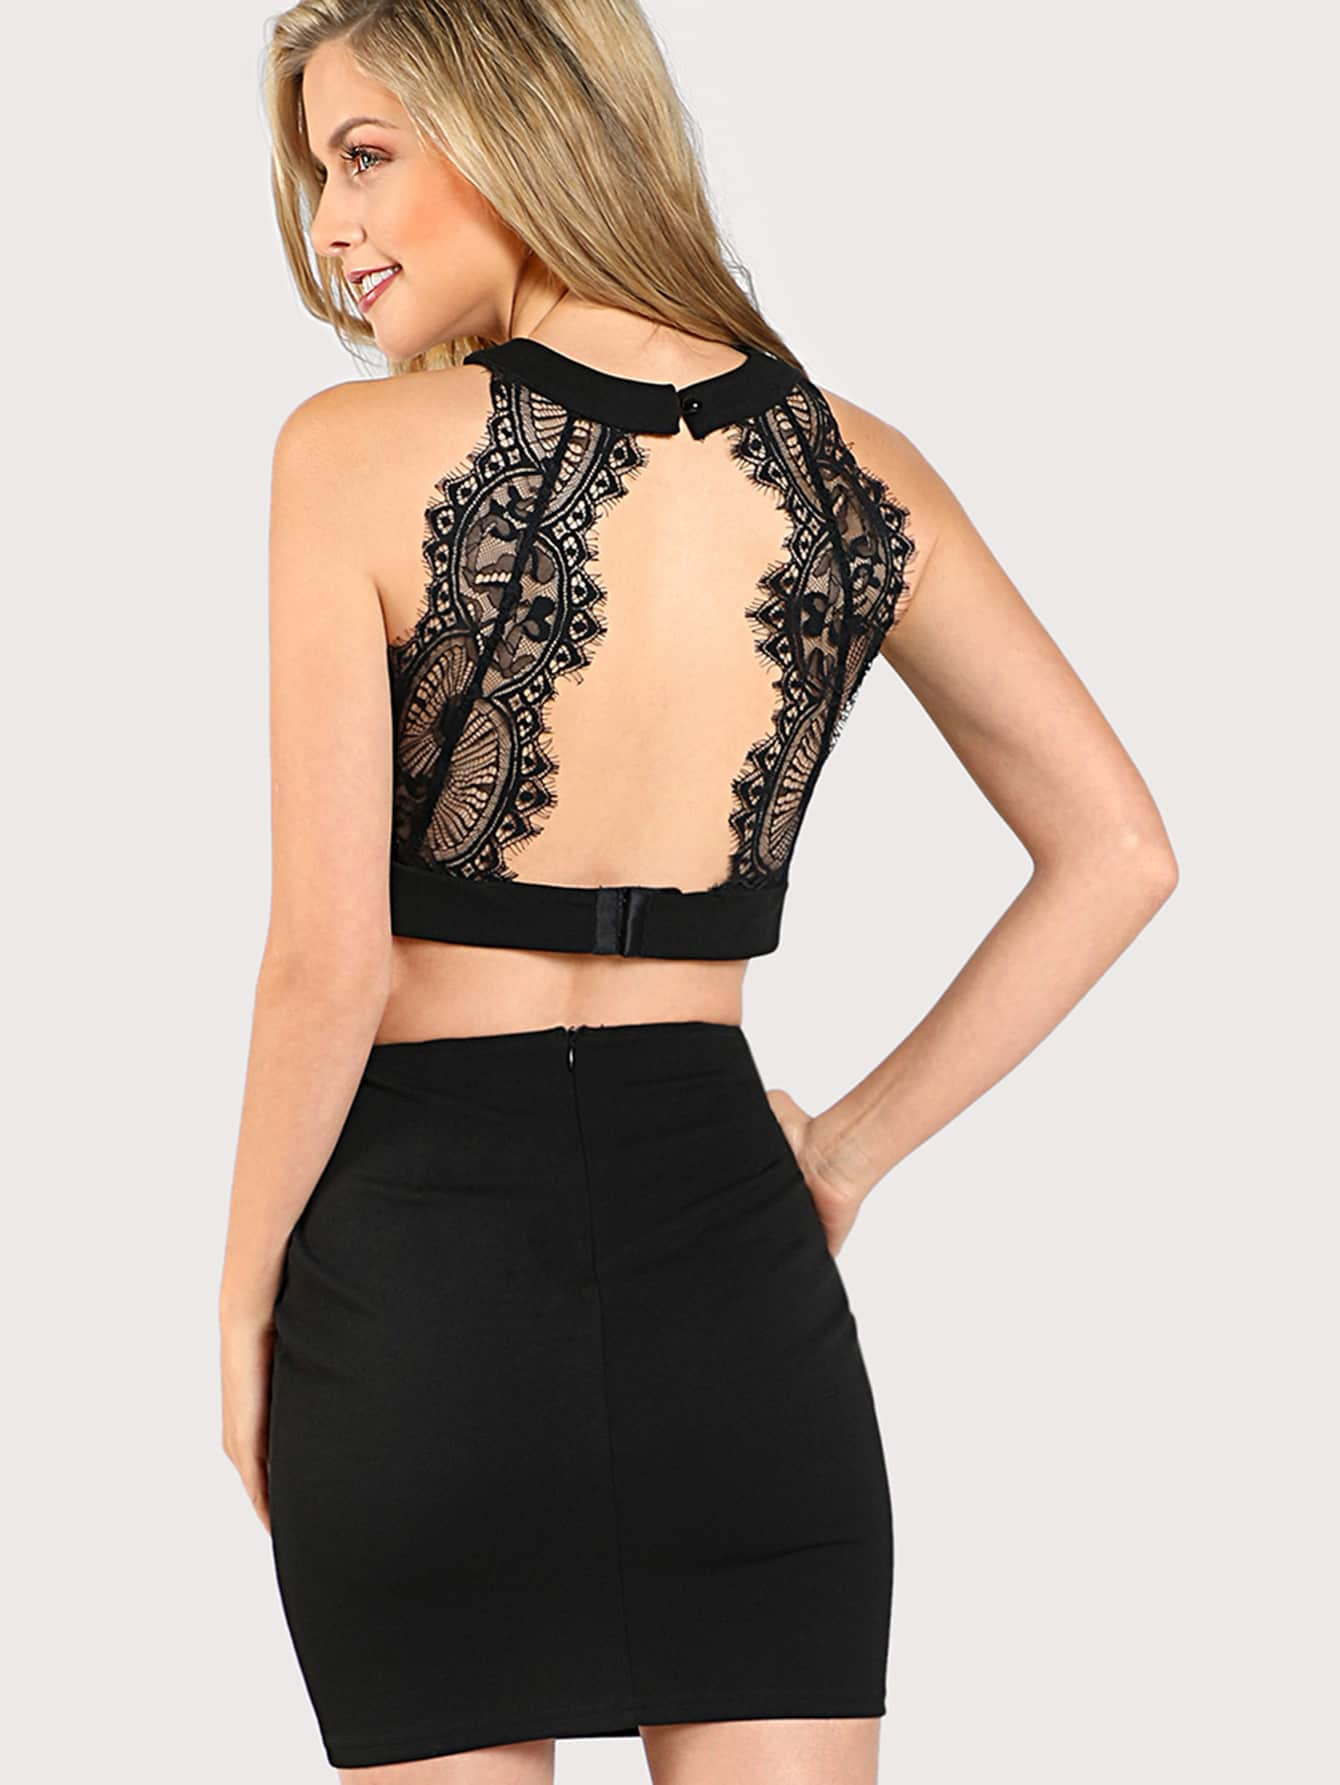 39db023f Plain Skirts - Women's Black Eyelash Lace Open Back Crop Top and ...